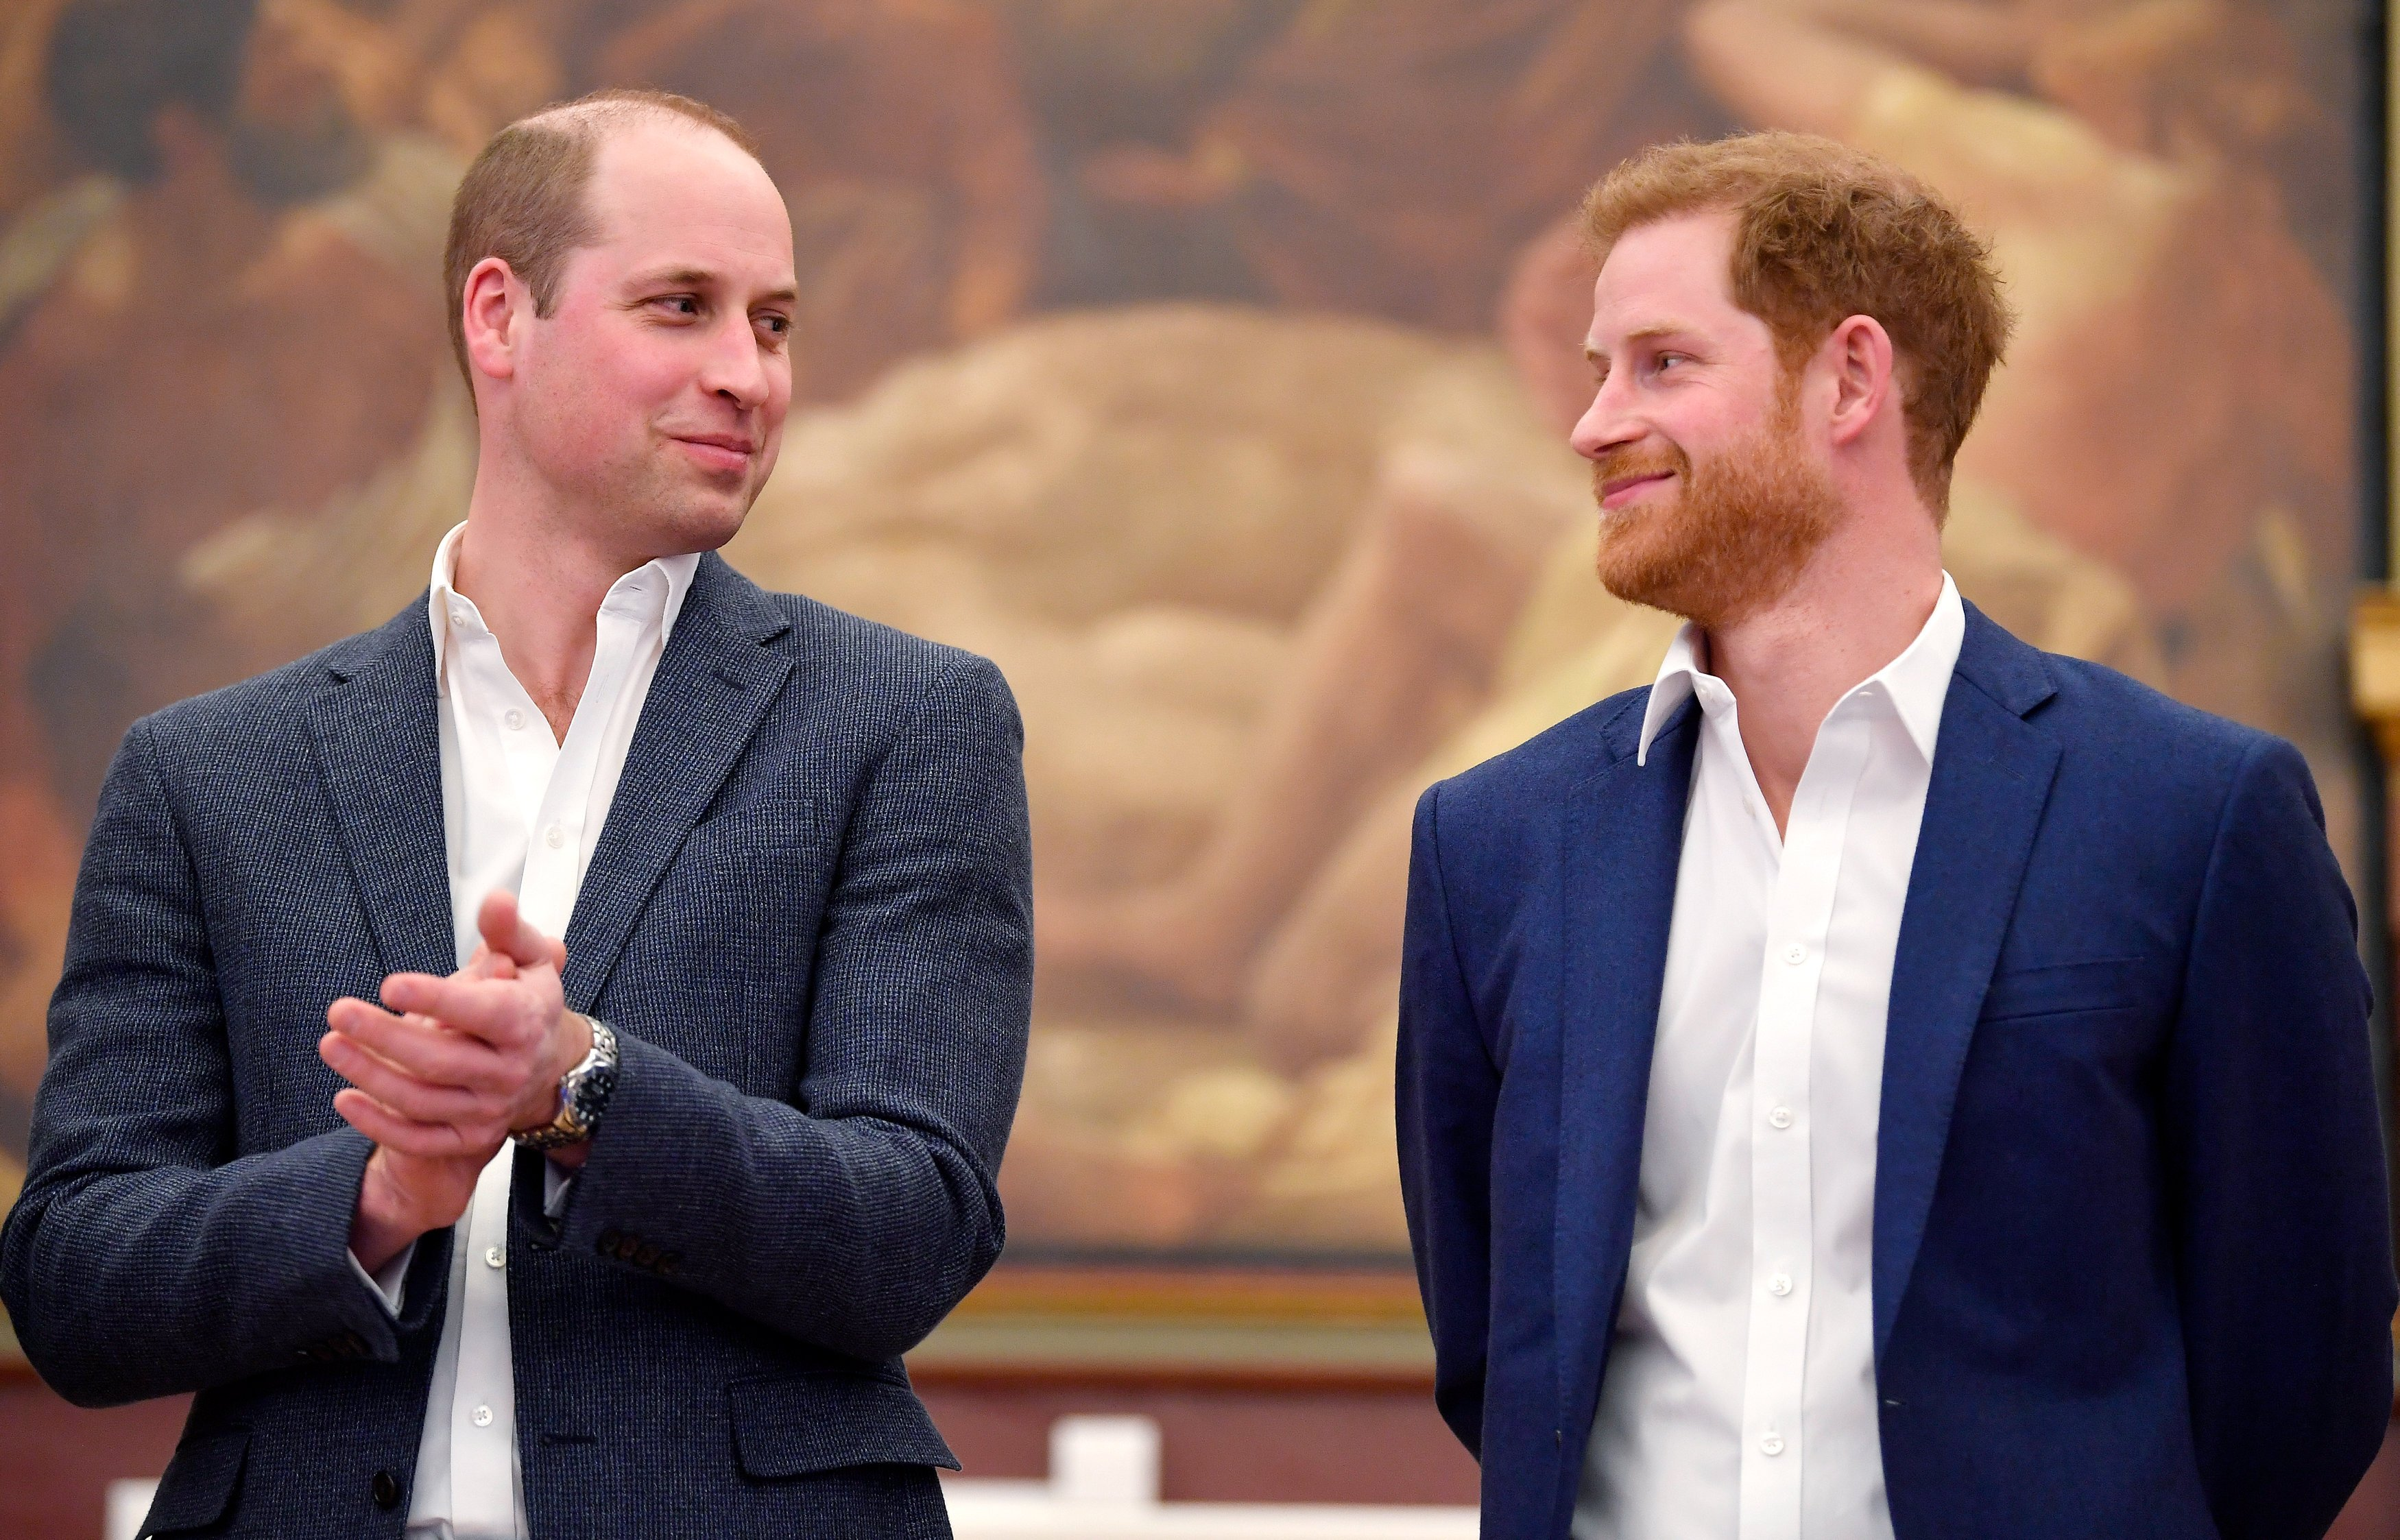 Le prince William, duc de Cambridge et le prince Harry assistent à l'ouverture du Greenhouse Sports Centre le 26 avril 2018 à Londres, au Royaume-Uni. | Source: Getty Images.